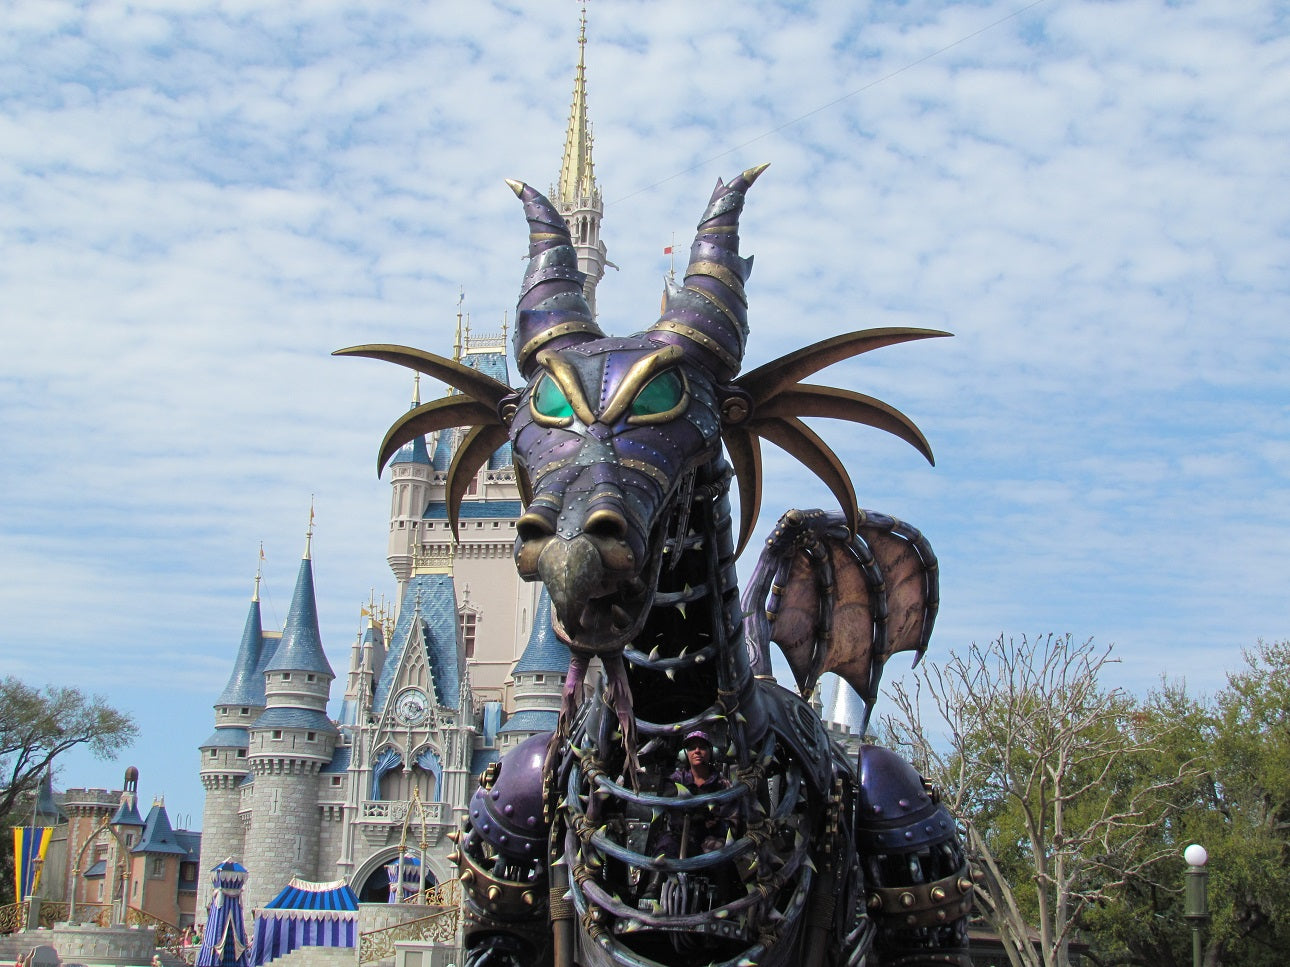 Malificent at Festival of Fantasy Parade